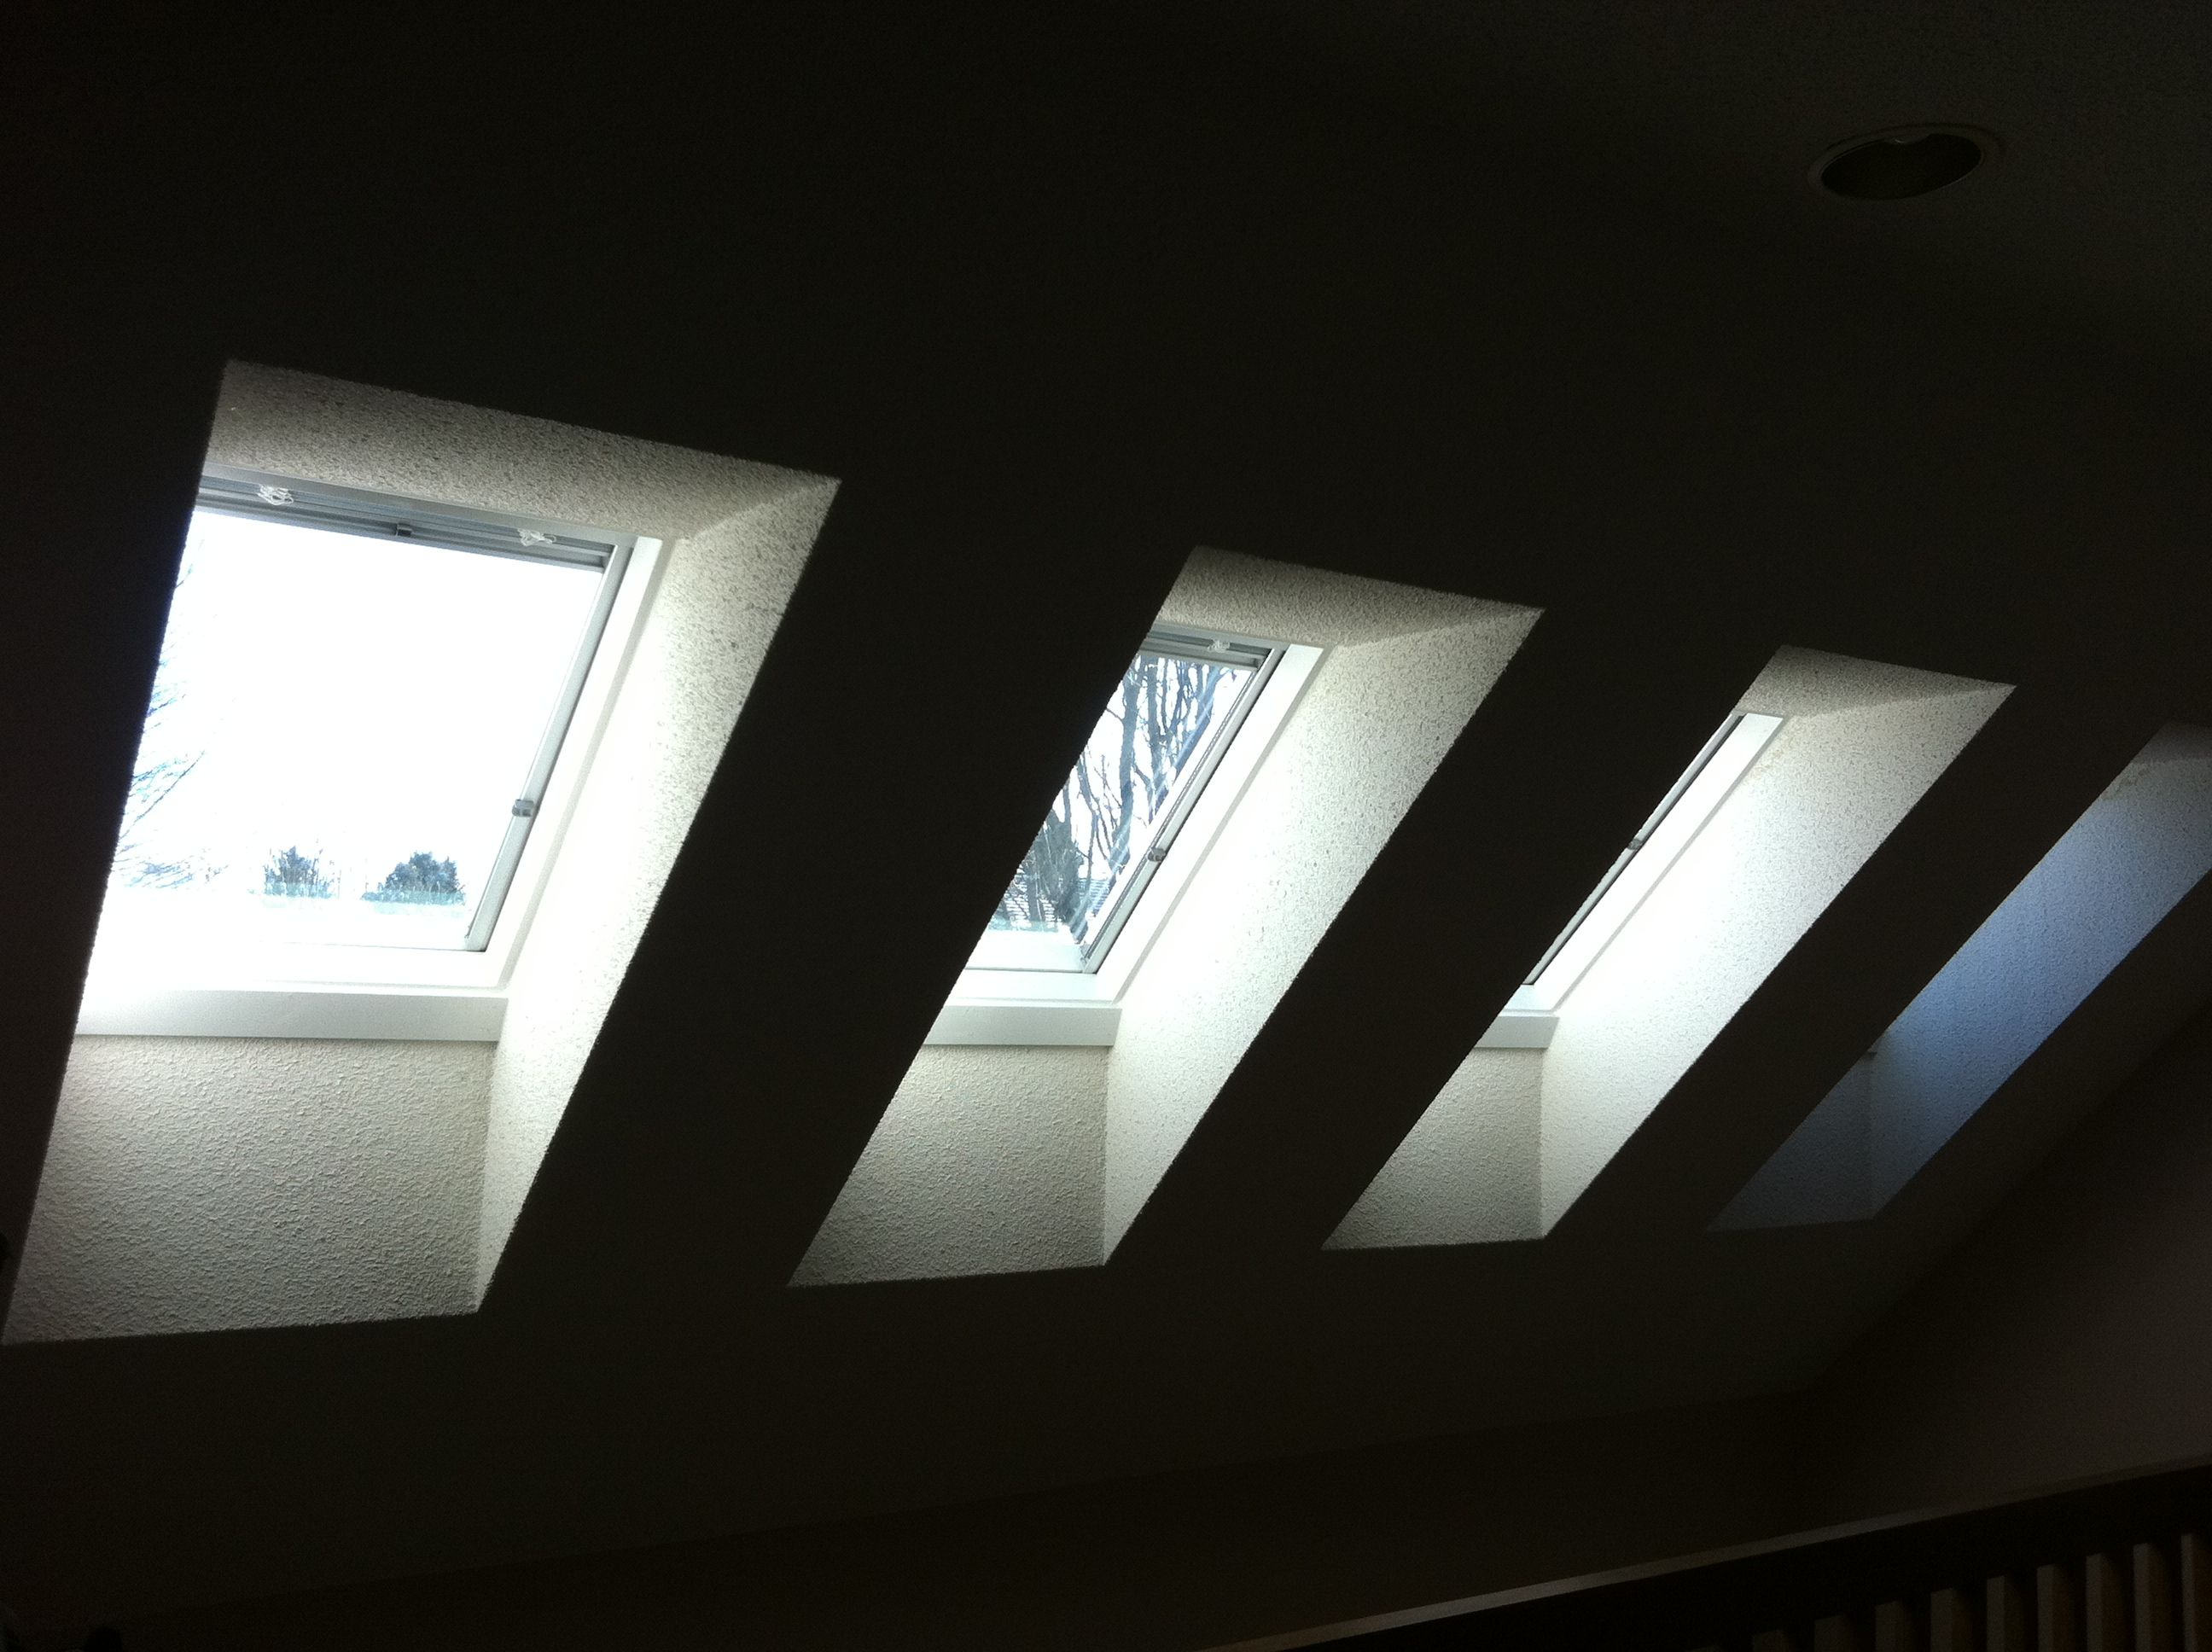 We Retrofit Four VELUX Curb Mounted Skylights Complete With Venetian Blinds To Replace Old Plastic